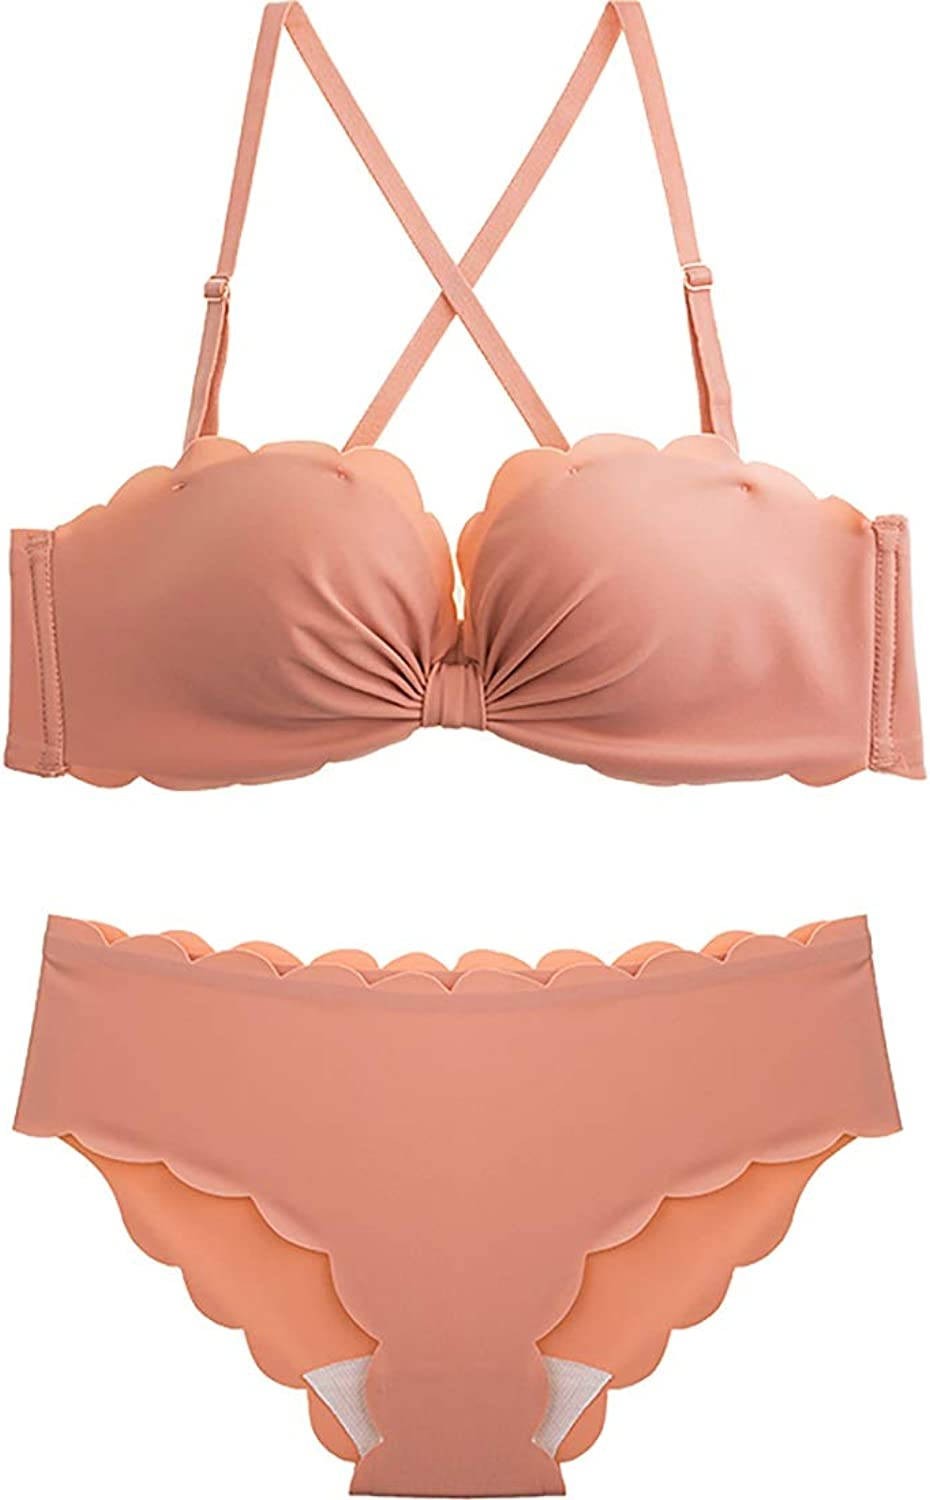 NICE' living hall UltraThin Girl Gathers Bra Set, Nylon and Sponge. No Steel Ring, Adjustable Chest, Adjustable Shoulder Strap, Two Rows of Buckles. Comfortable